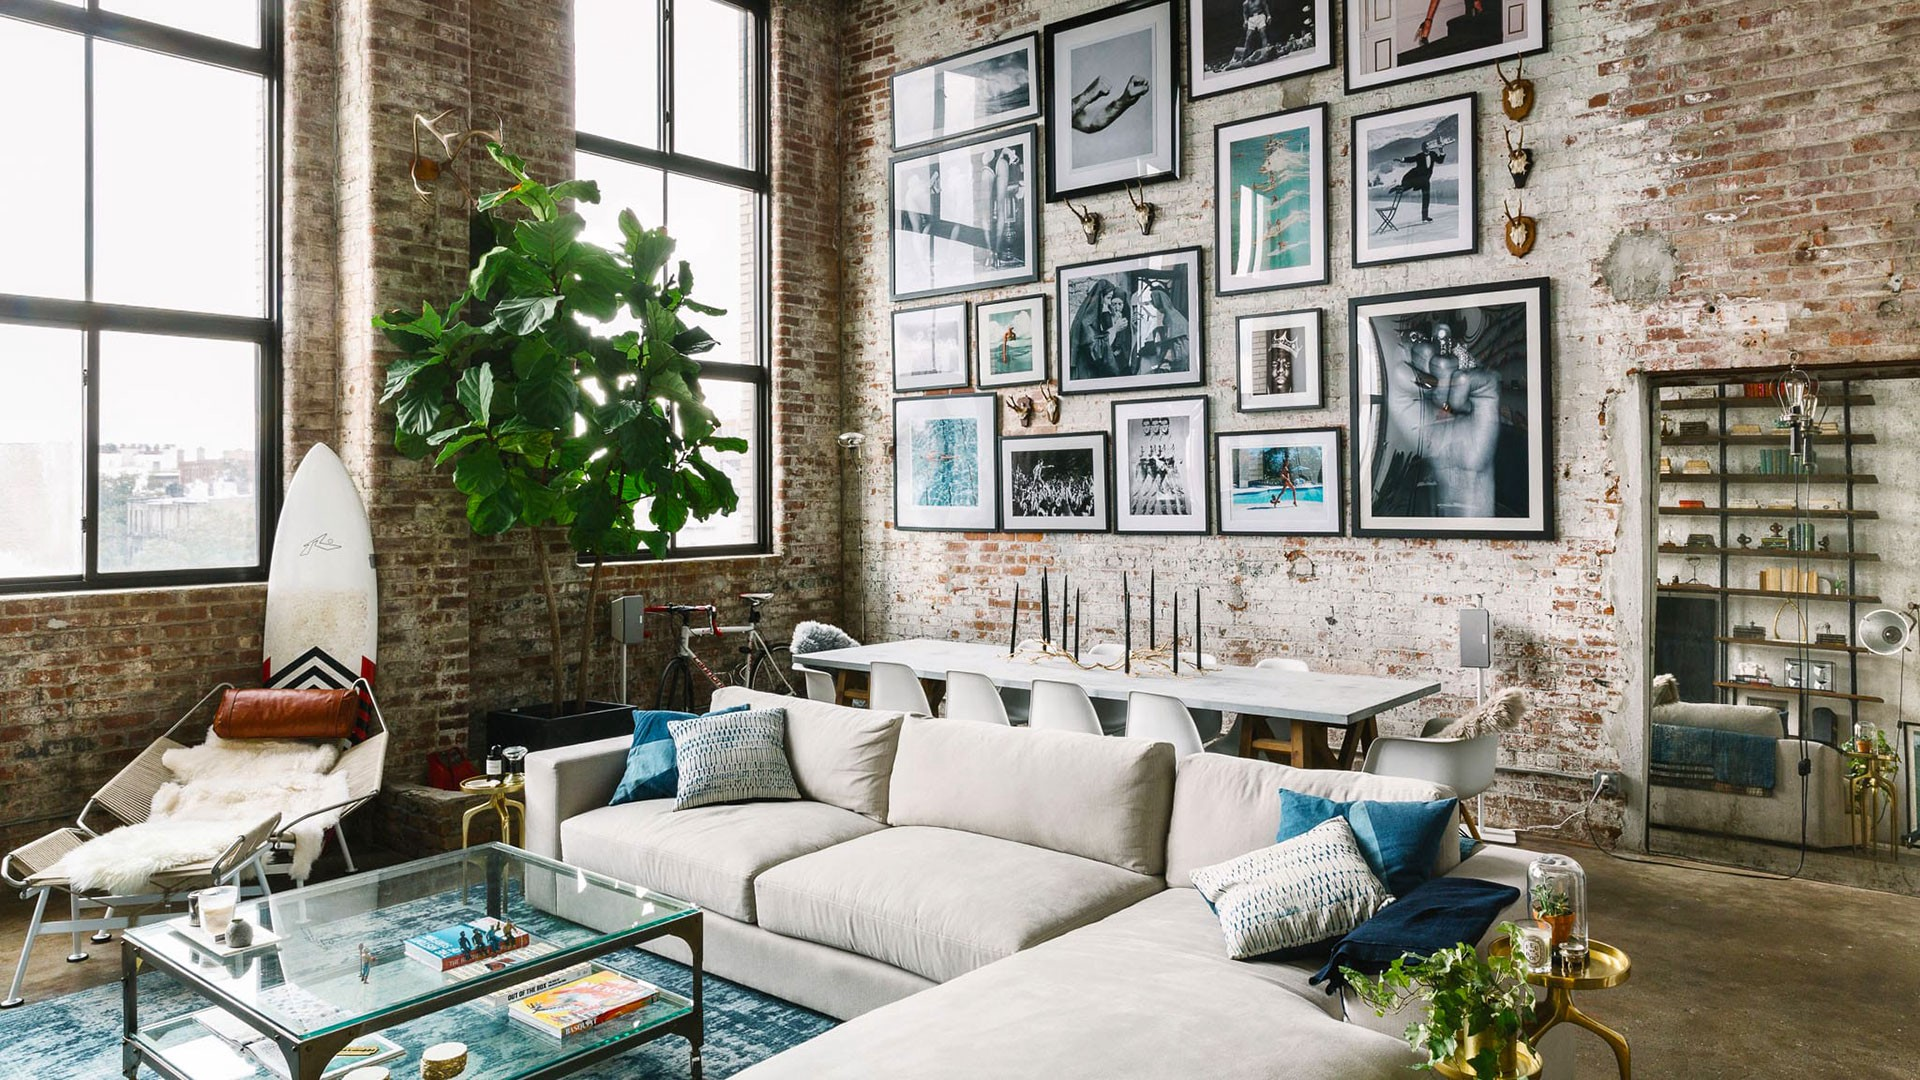 Home Designing Tips That Will Make Your Home Gorgeous By Lily Alvin Medium